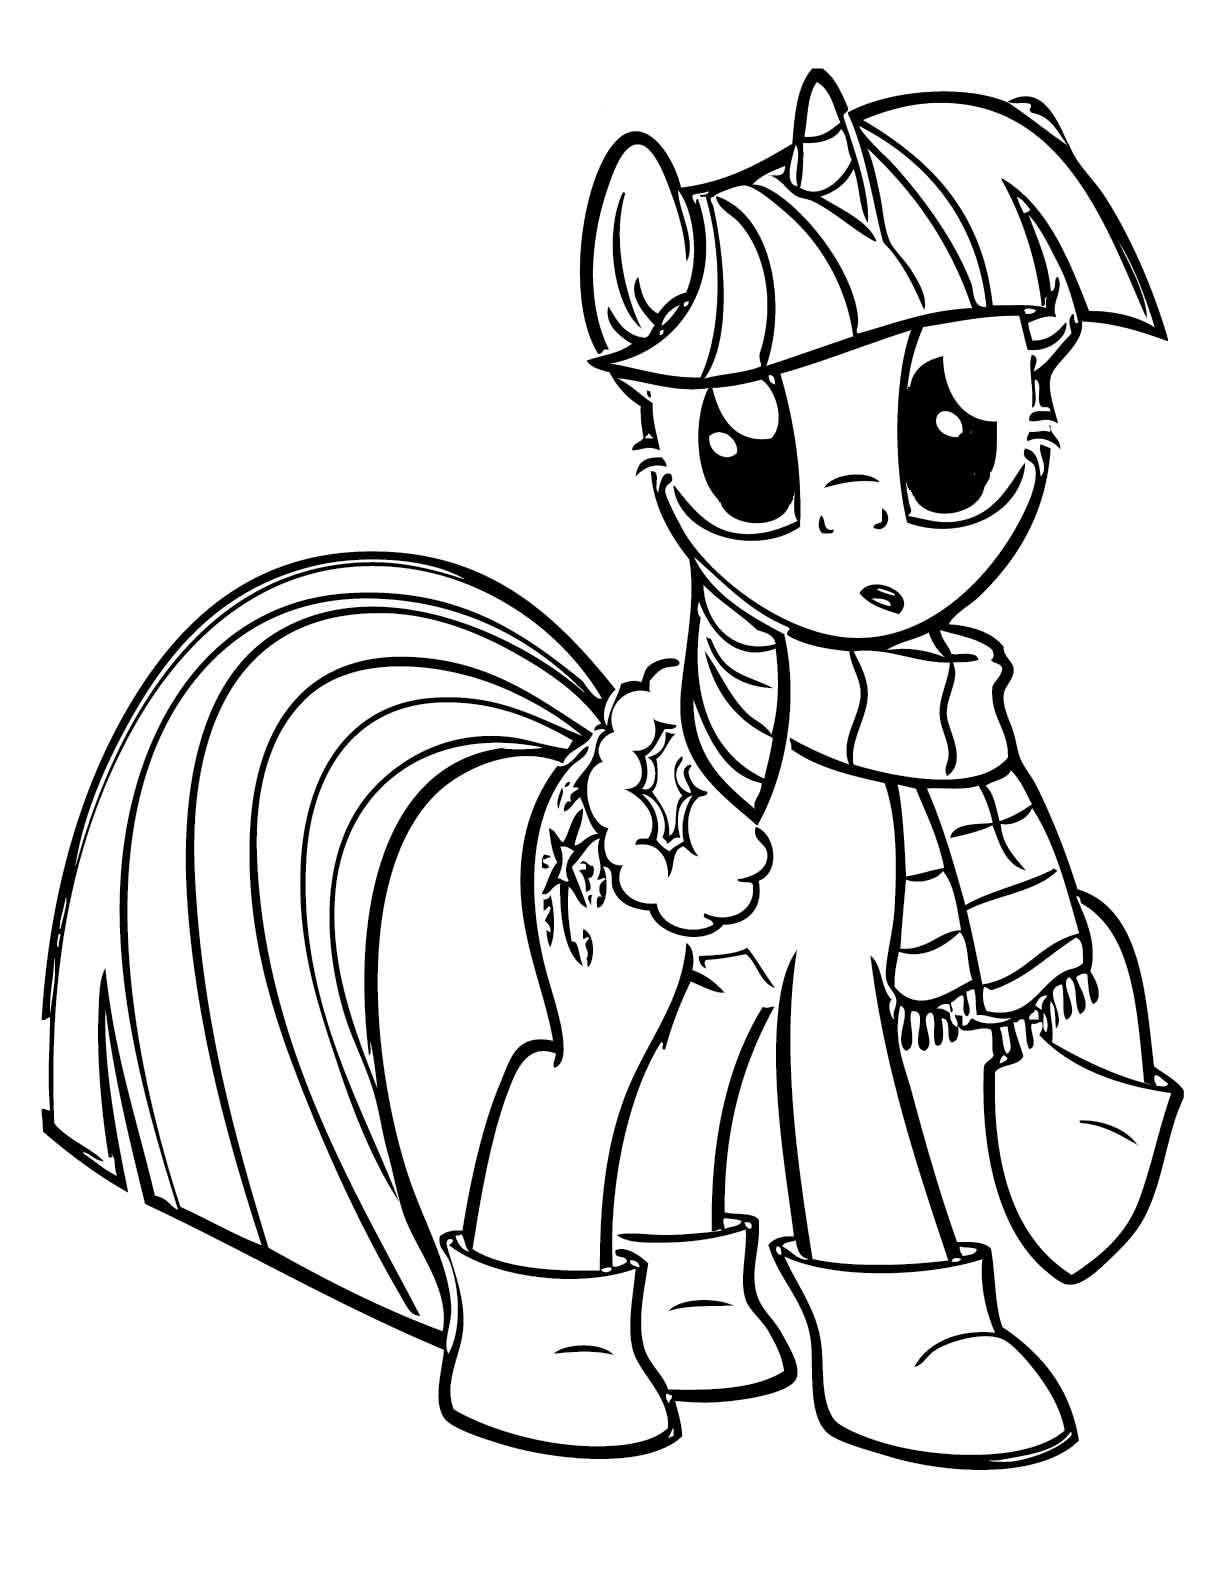 My little pony season 4 coloring pages - My Little Pony Friendship Is Magic Is An Animated Television Series Produced By Hasbro Studios